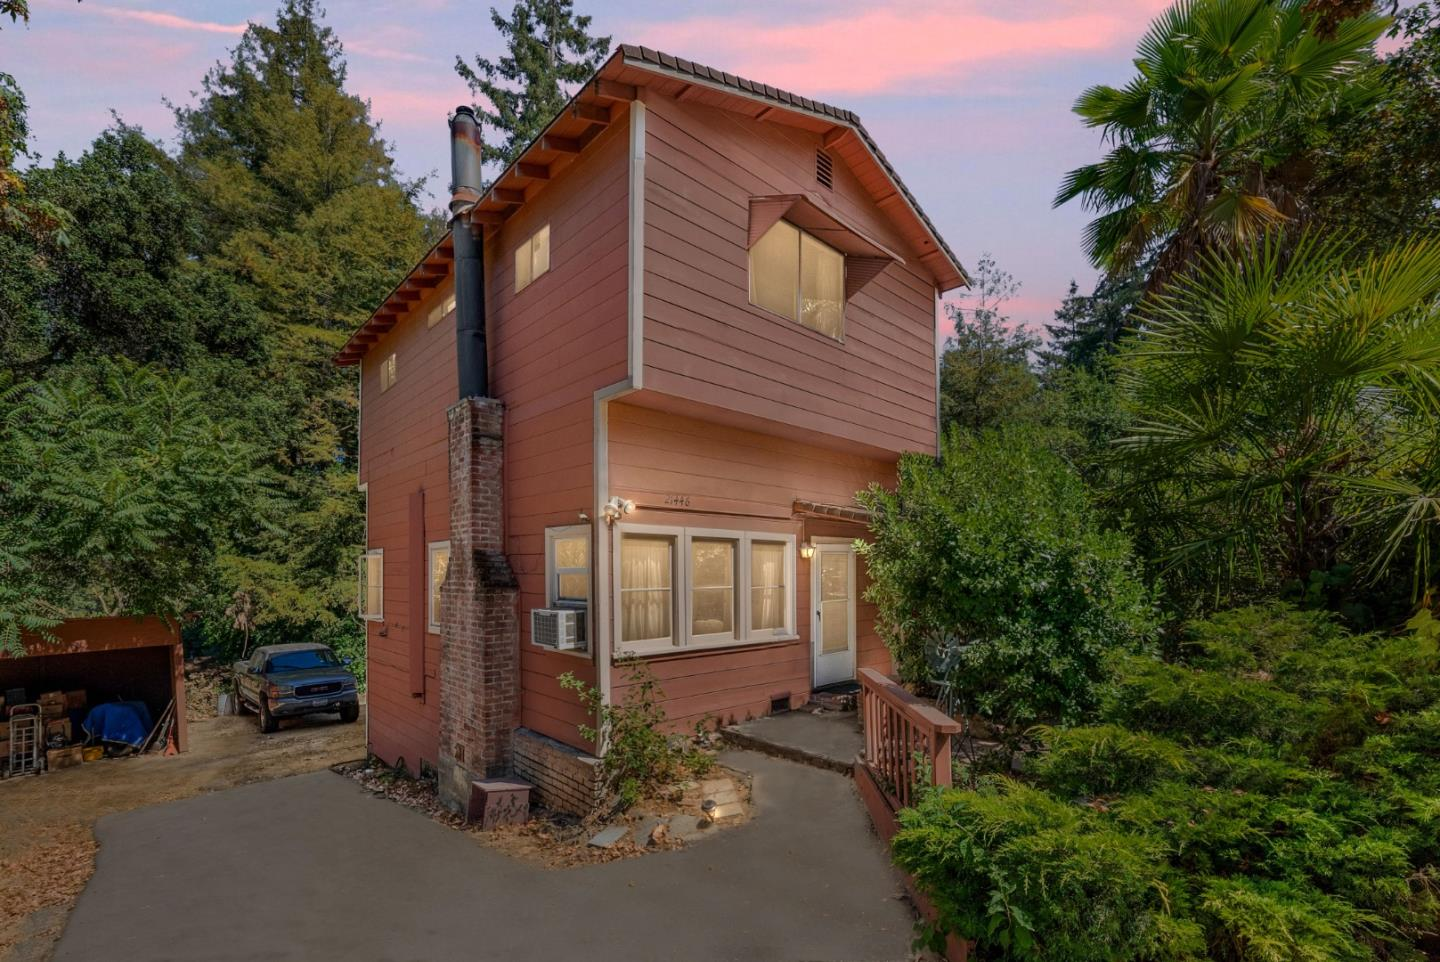 Welcome to 21446 Broadway Ave, a peaceful home nestled amidst the beautiful redwoods, situated on a big lot in the highly desirable Redwood Estates neighborhood of Los Gatos.This home presents a great opportunity to remodel to best fit your own specific tastes and preferences. Enjoy the private deck and large backyard which is great for entertaining family and friends. The kitchen flows wonderfully into the family room with vaulted ceilings and features 2 bedrooms & 1 bathroom on both the first & second floor. There is also a basement that has plenty of room for a workshop and additional storage.Just a short walk to the store, community center with pool & playground, Nonno's Italian Cafe & the local Post Office. Conveniently located just a quick 10-minute drive to popular downtown Los Gatos known for its family friendly atmosphere,shopping, boutiqueshops,restaurants, and top rated schools. Don't miss out on this great opportunity!